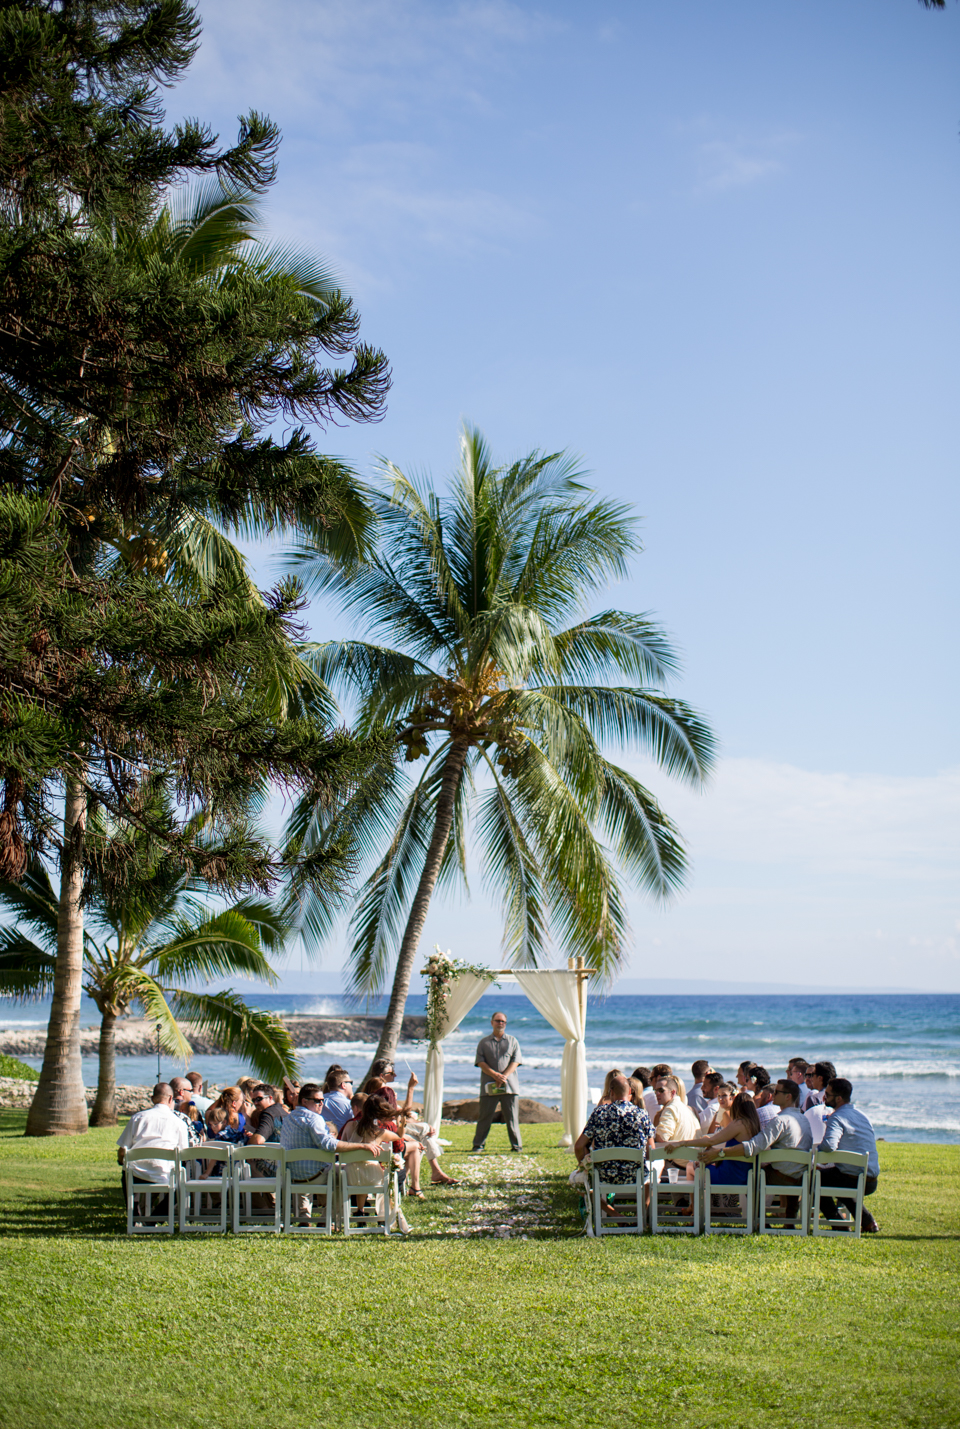 046_maui-wedding-photographer-kaua-photography